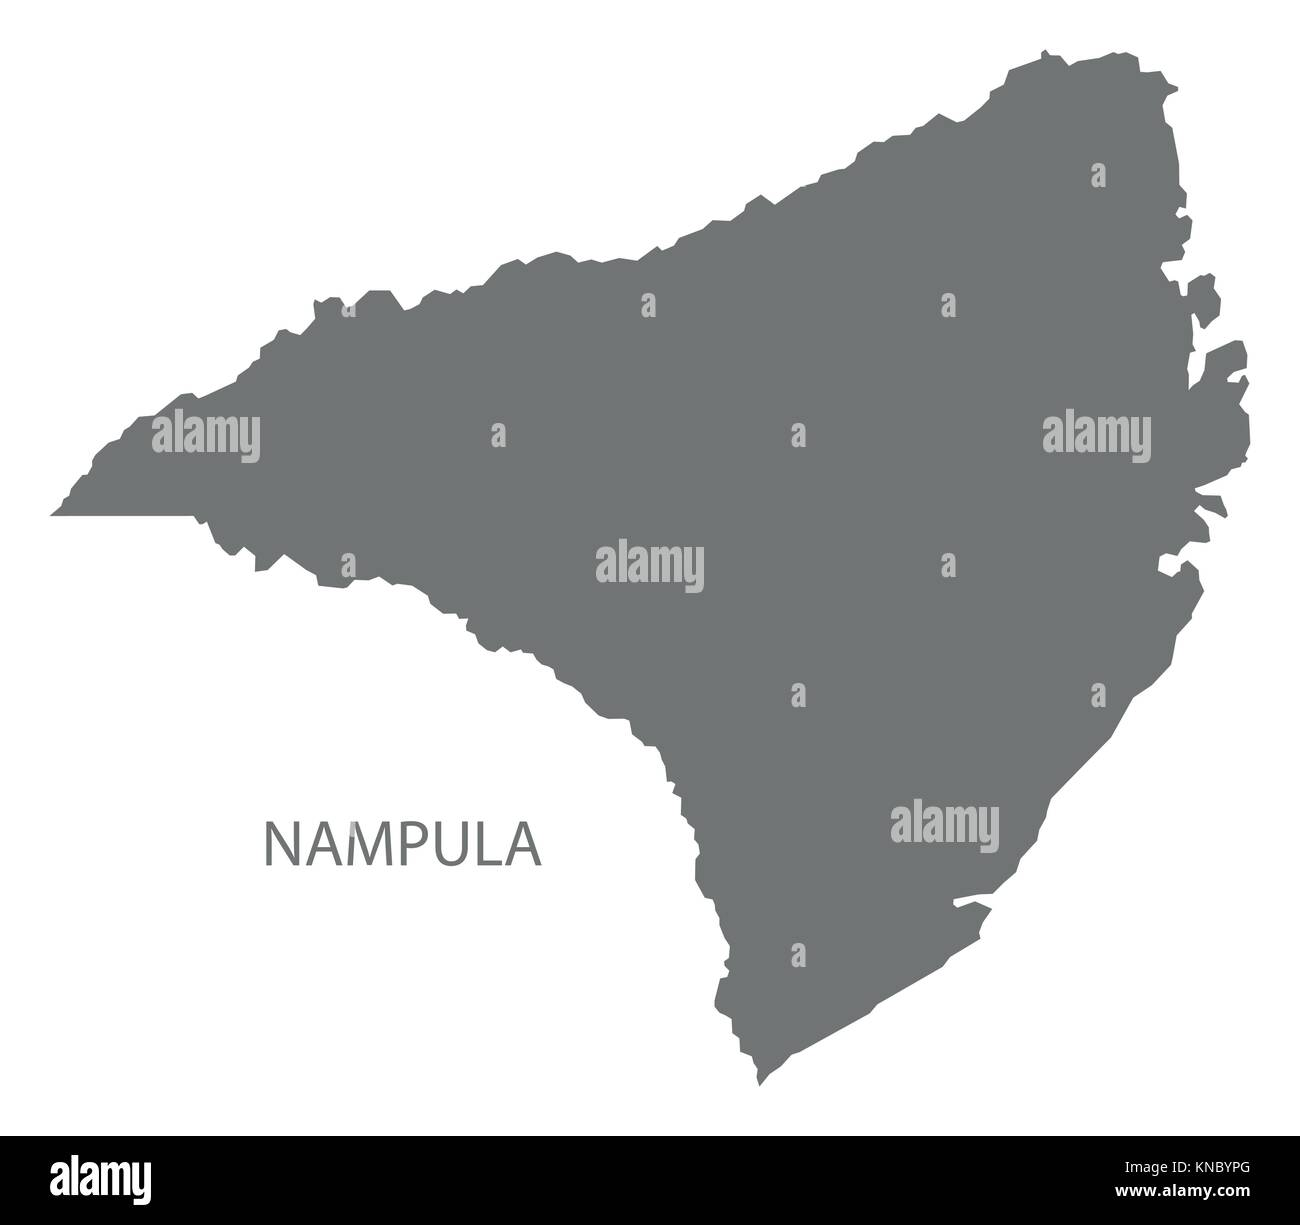 Nampula map of Mozambique grey illustration silhouette shape Stock